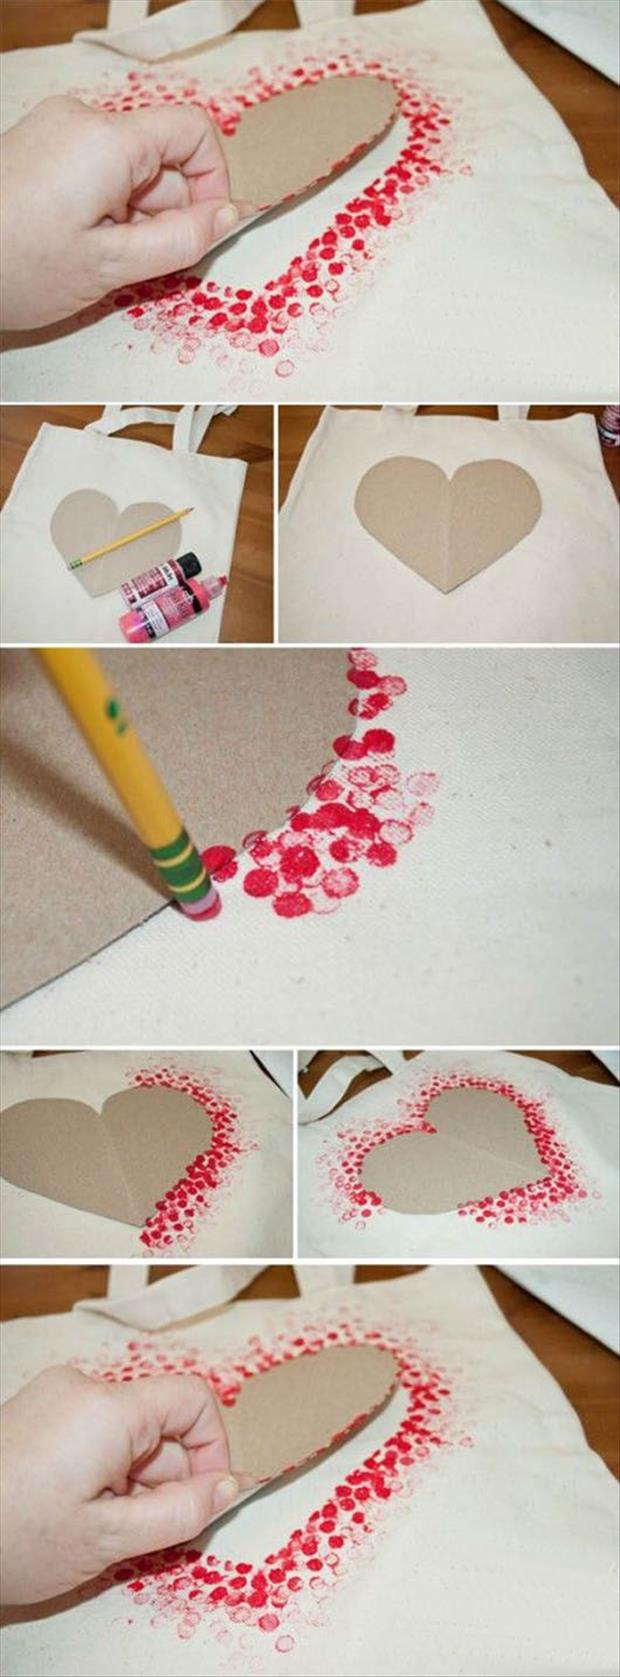 Do it yourself craft ideas of the week 52 pics craft ideas 15 solutioingenieria Choice Image